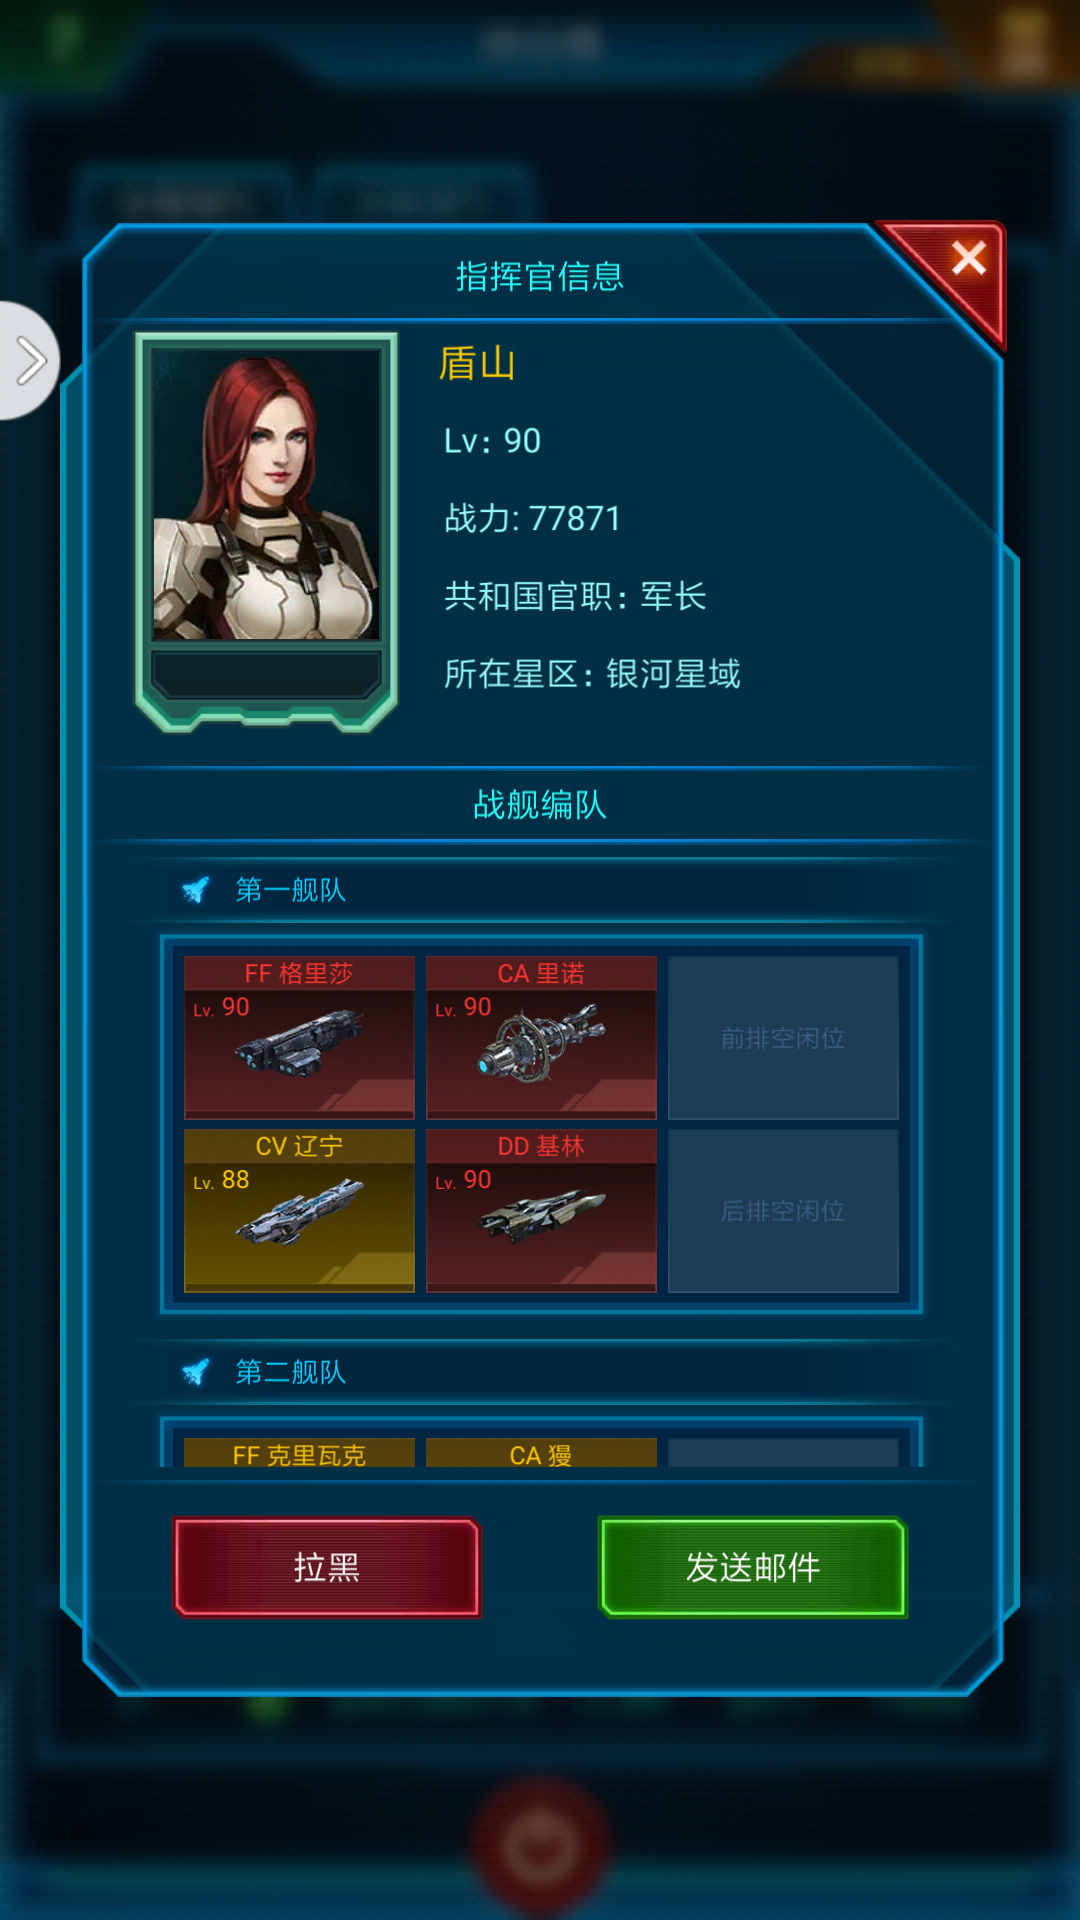 Screenshot_2018-10-11-20-09-41-223_com.xhlm.anzhuo.png